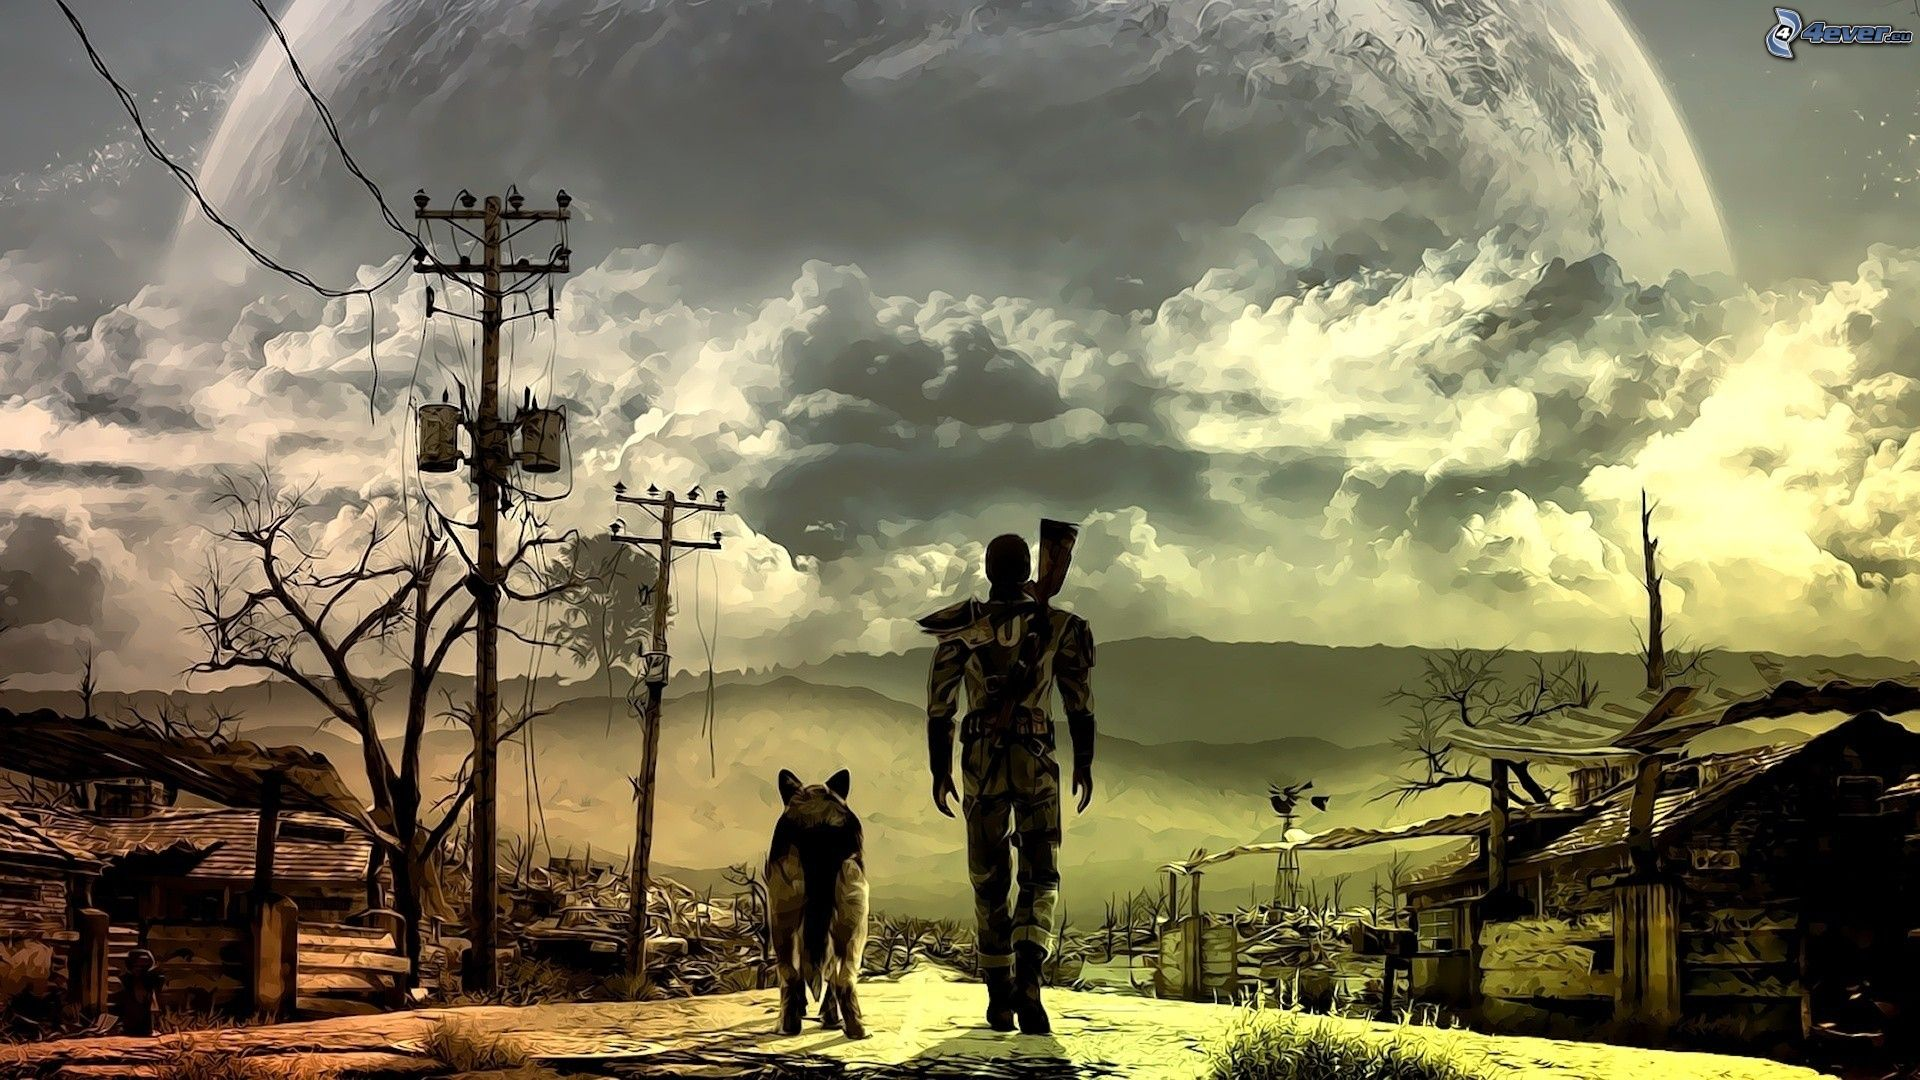 fallout-3-wasteland,-man-with-dog-202853